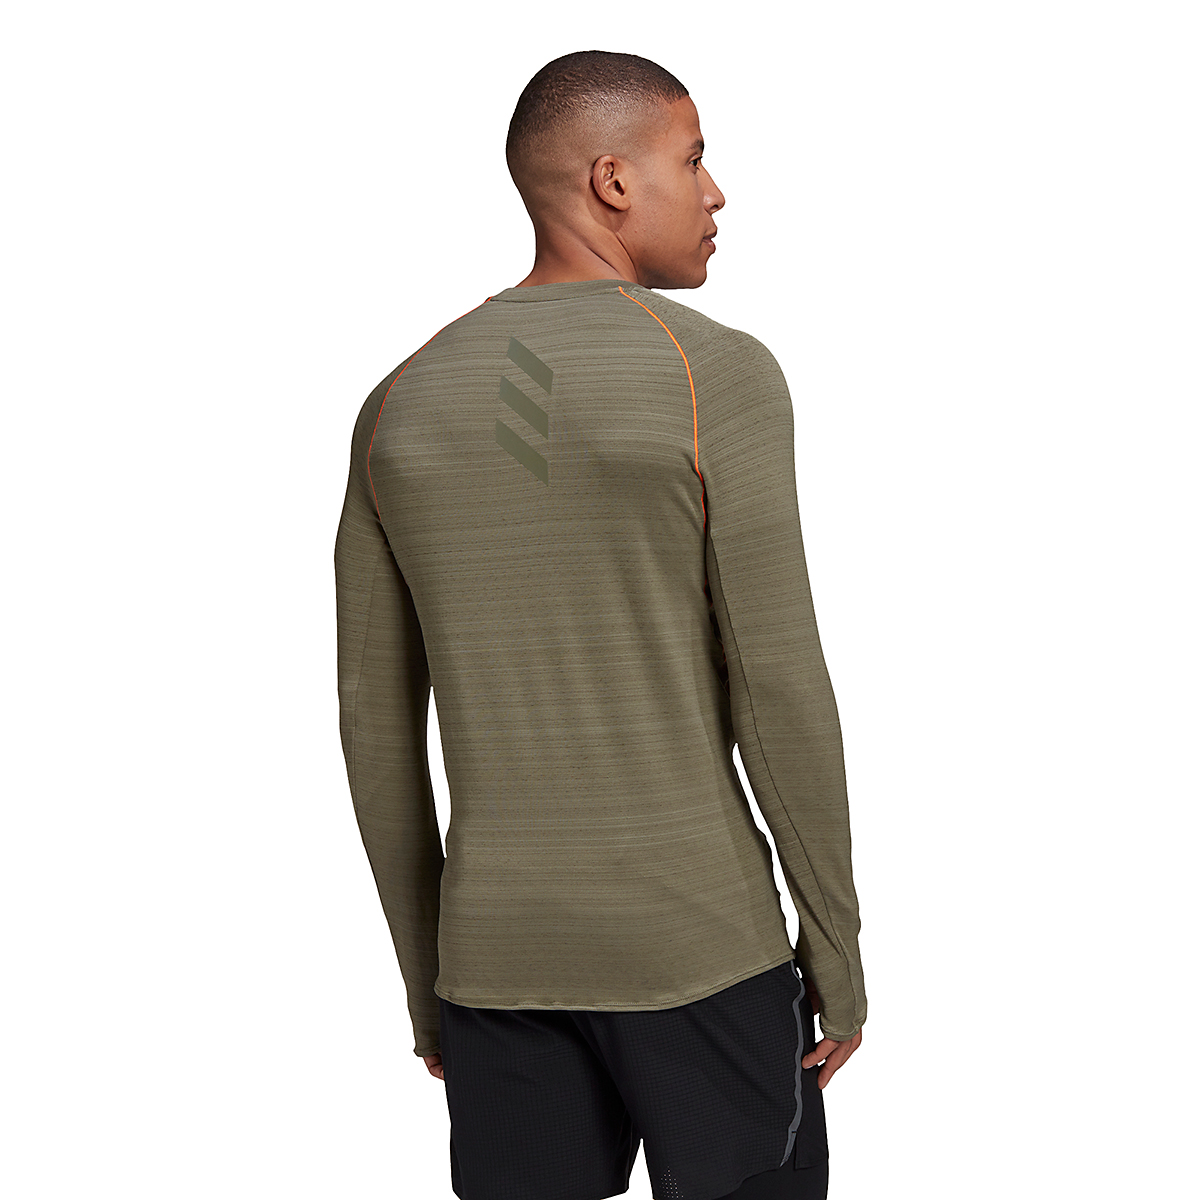 Men's Adidas Runner Long Sleeve Tee - Color: Legacy Green - Size: S, Legacy Green, large, image 3